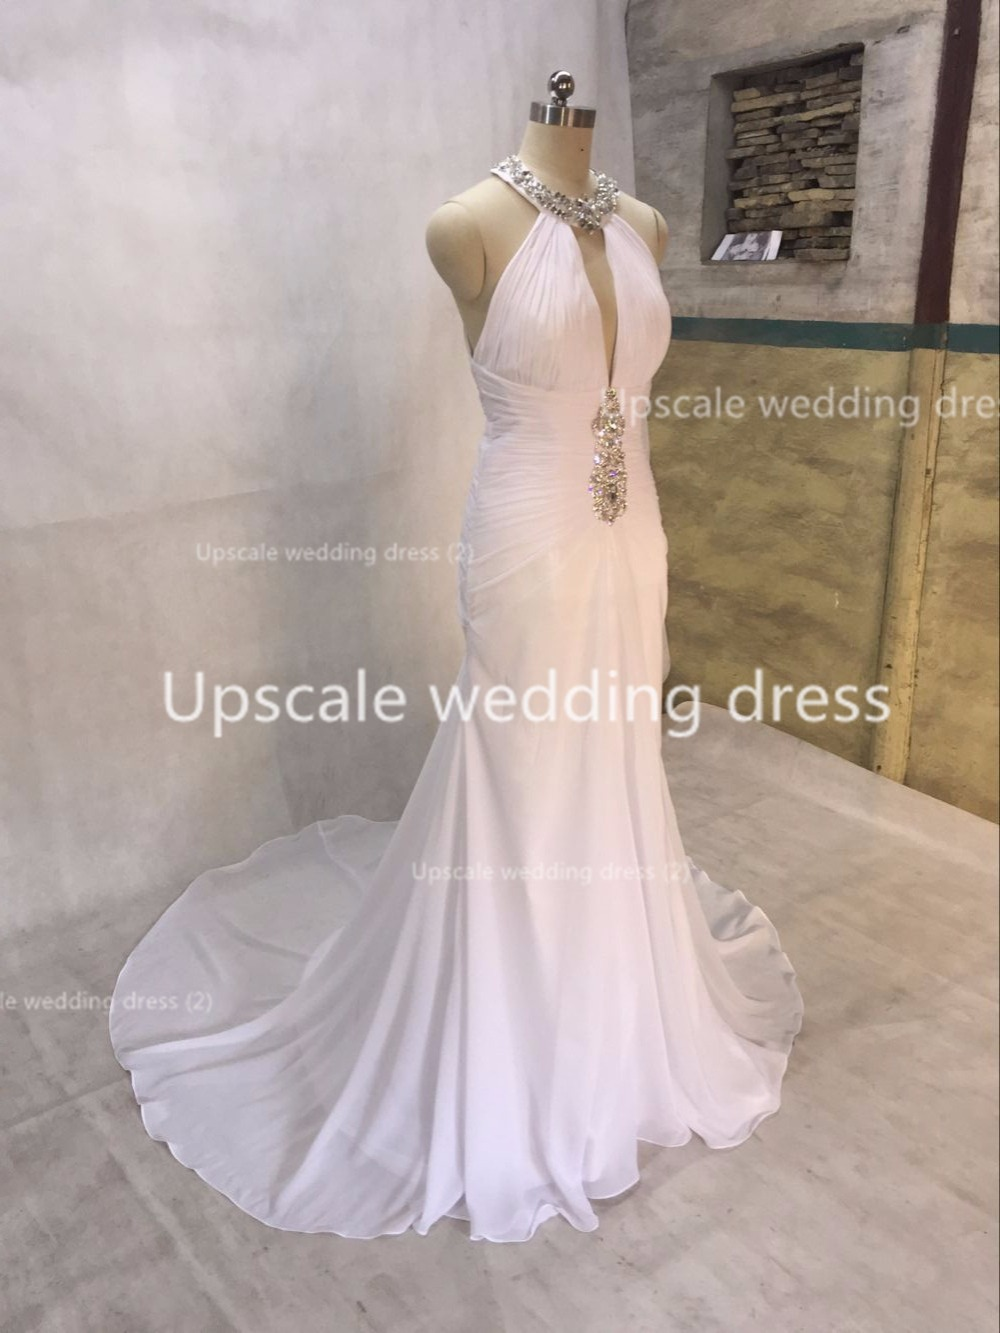 Sparkling halter mermaid beach wedding dresses v neck white sparkling halter mermaid beach wedding dresses v neck white chiffon crystal beading bridal gowns for wedding party dresses 2018 in wedding dresses from ombrellifo Image collections